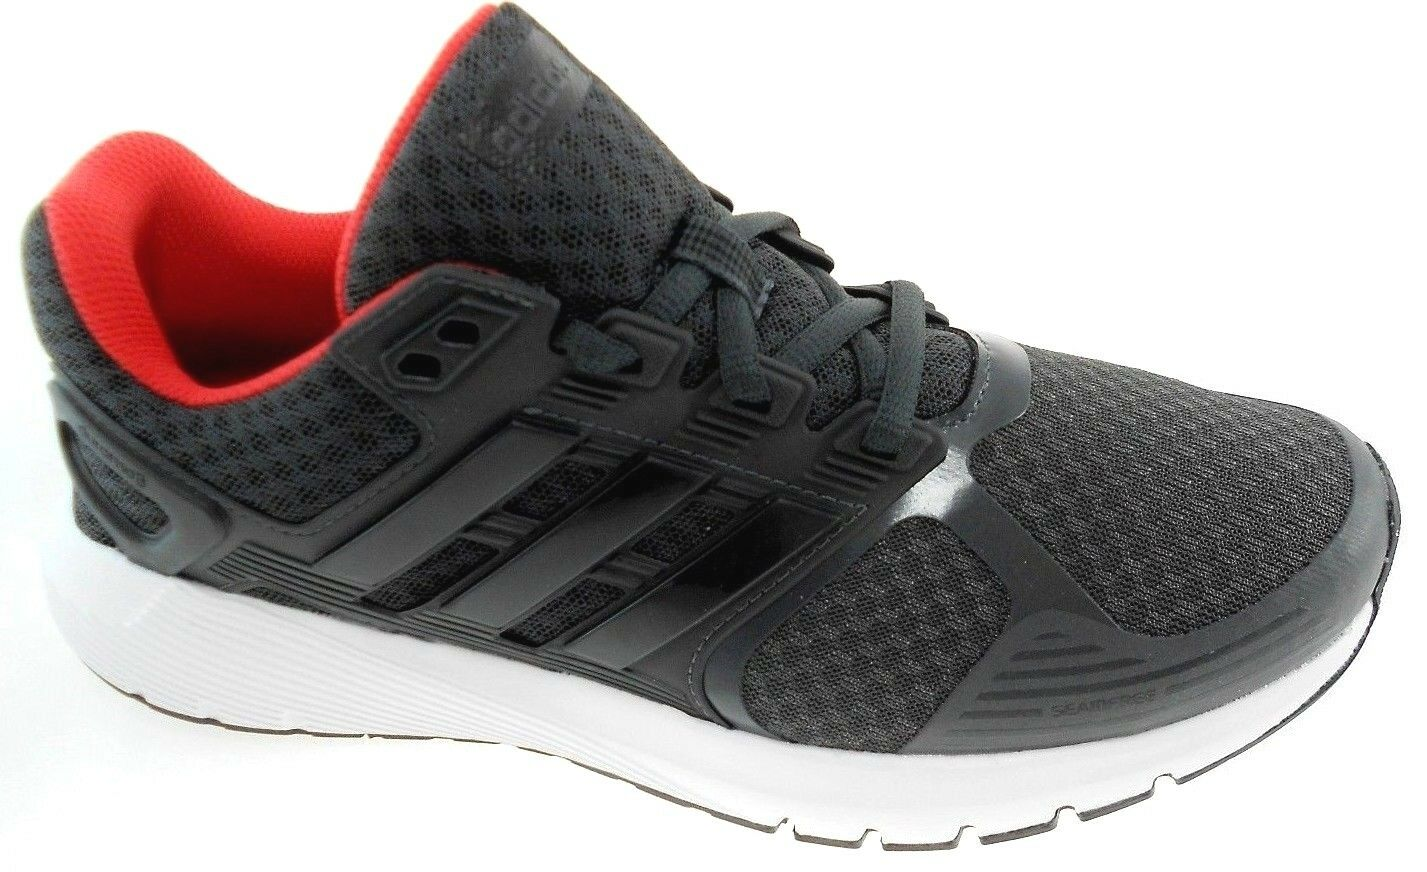 ADIDAS DURAMO 8 W WOMEN'S CARBON lightweight RUNNING SHOES #CP8750 1